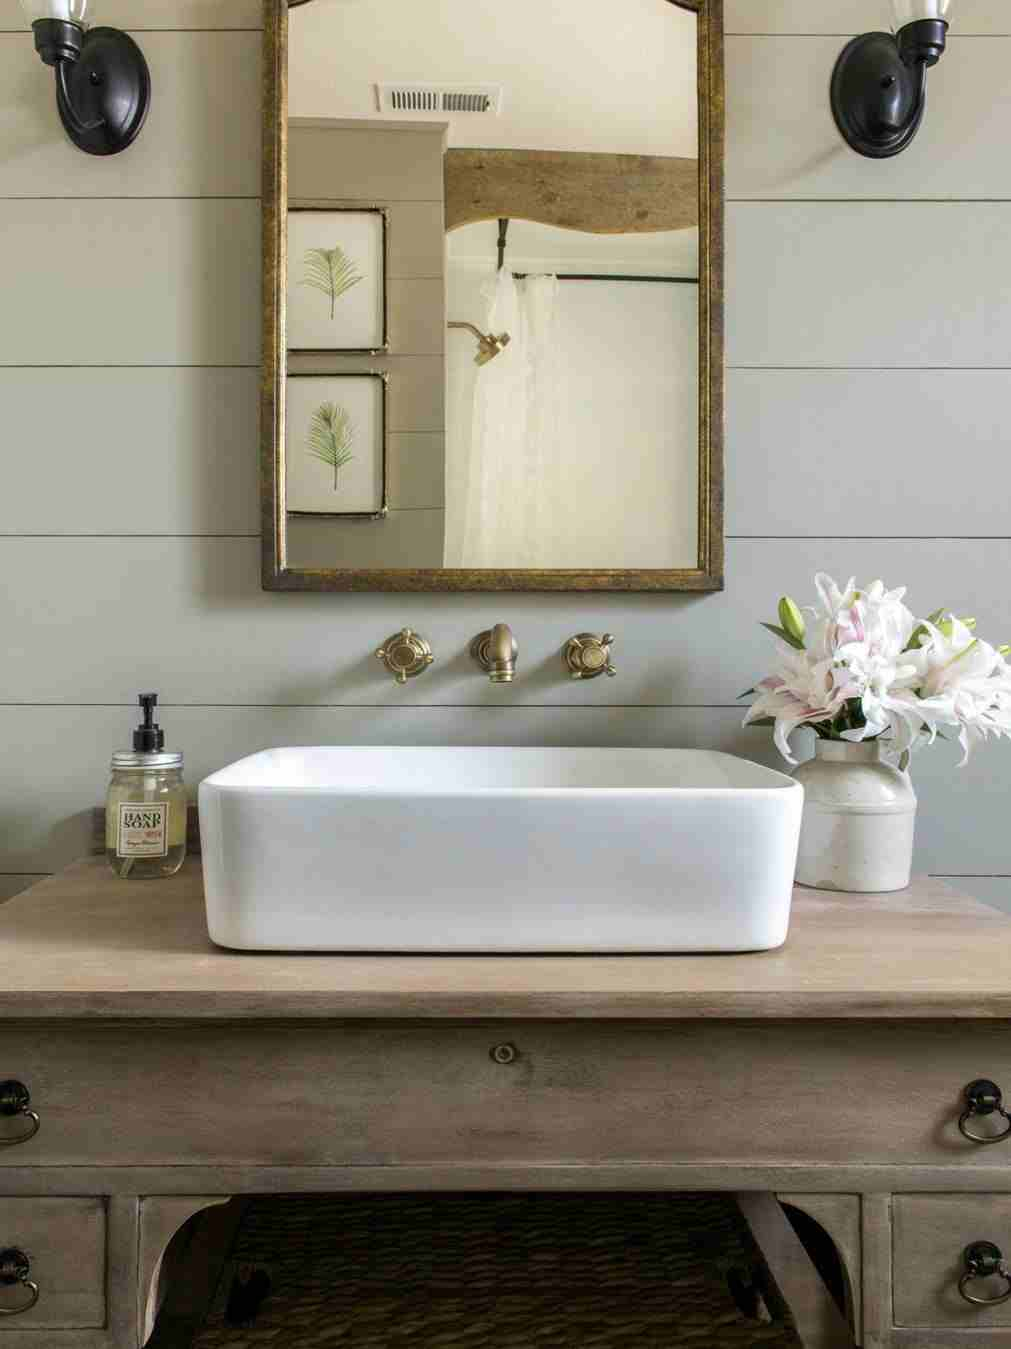 antique bathroom vanity with vessel sink vessel sink awesome rhiideacom picture antique bathroom vanity of with vessel  sink HPILSSS